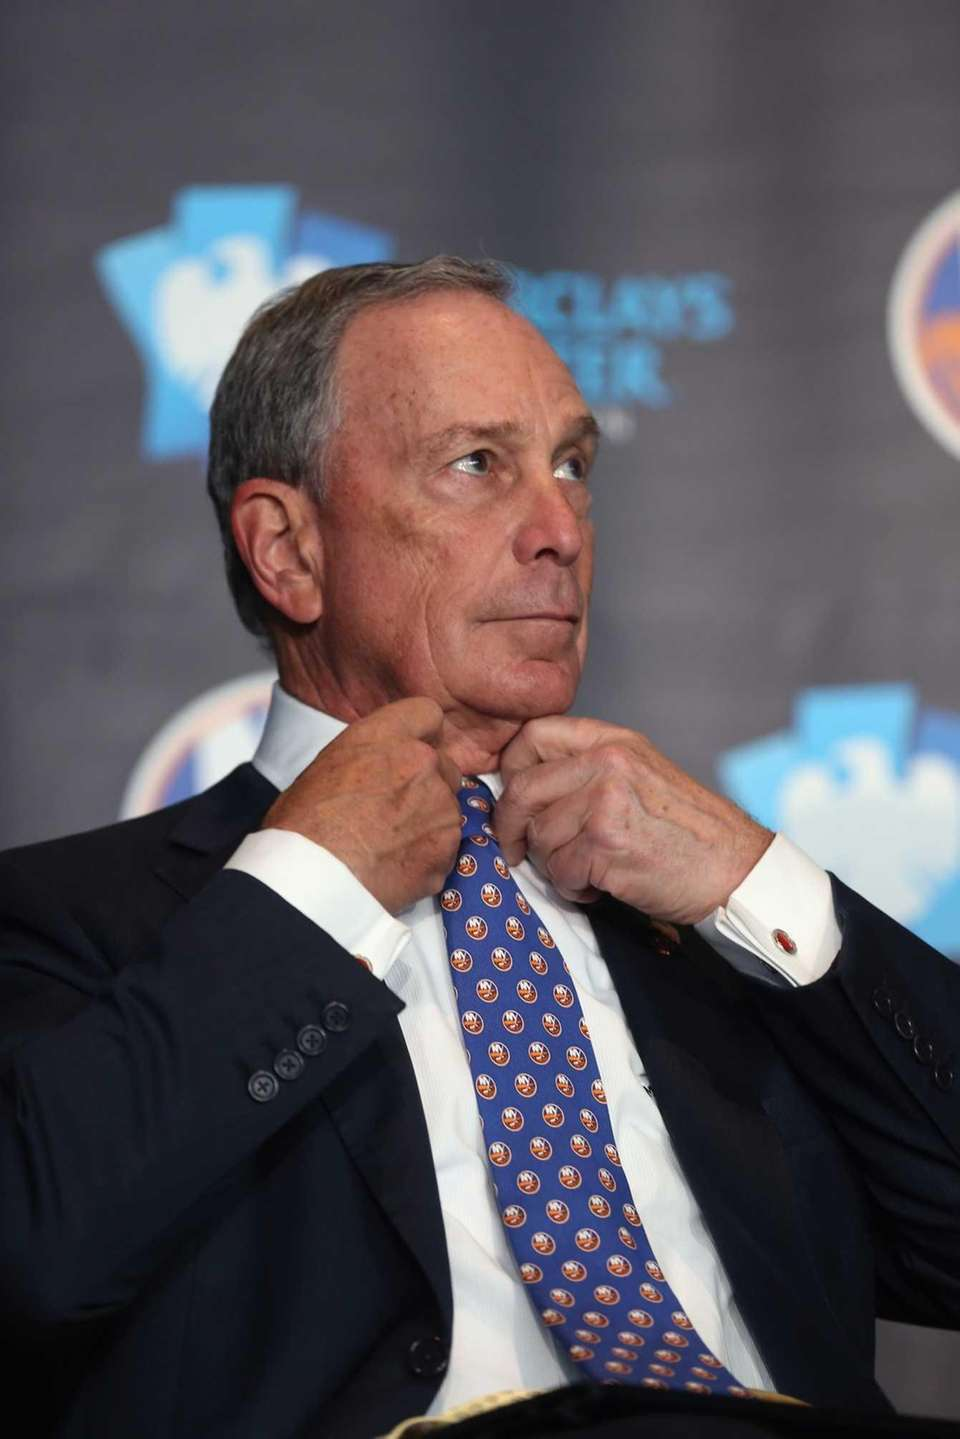 New York Mayor Michael Bloomberg adjusts his new